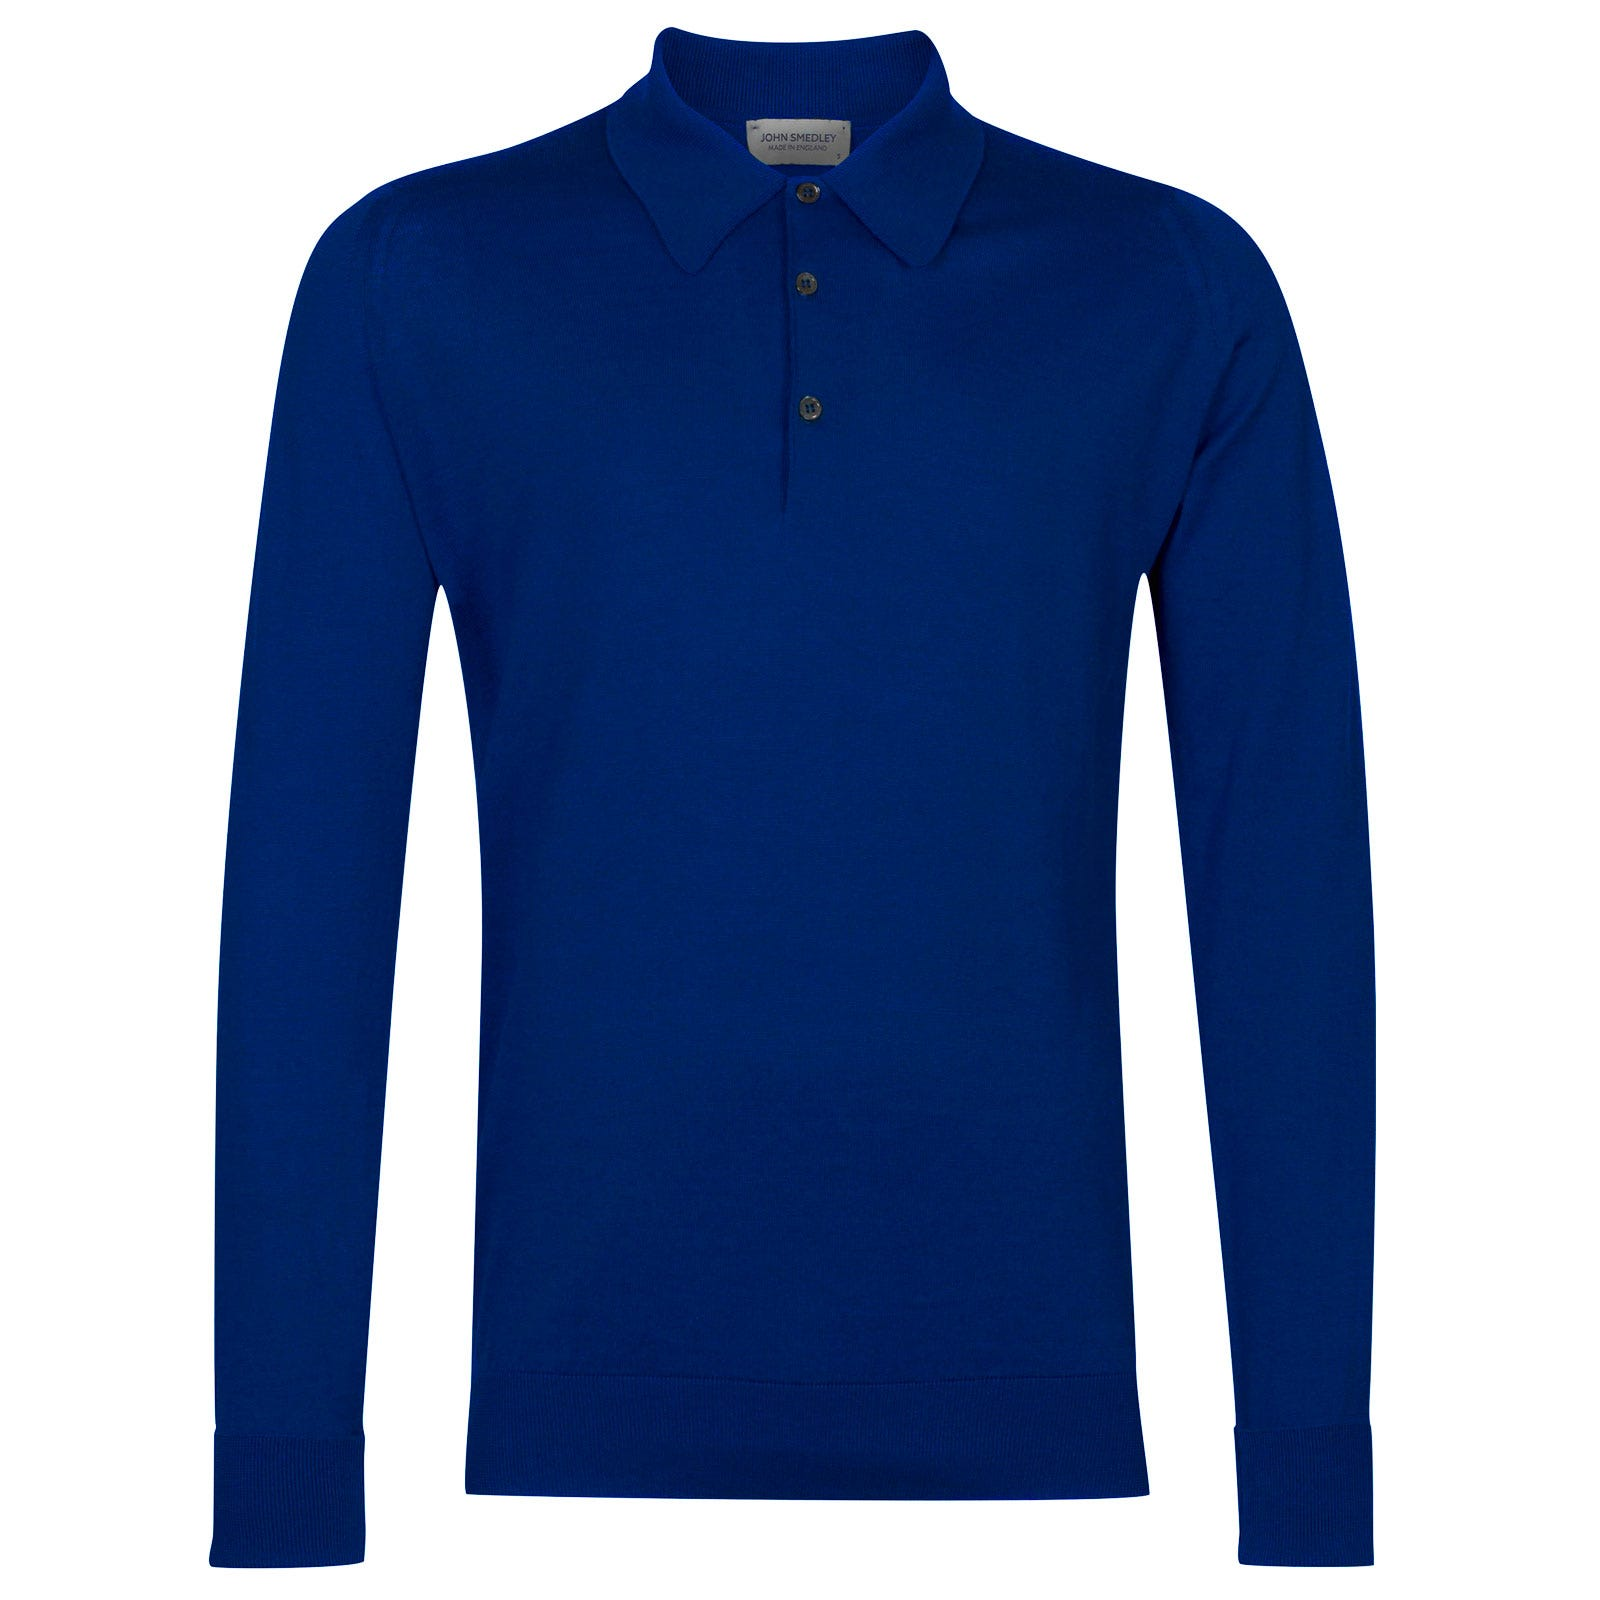 John Smedley finchley Sea Island Cotton Shirt in Coniston Blue-XL